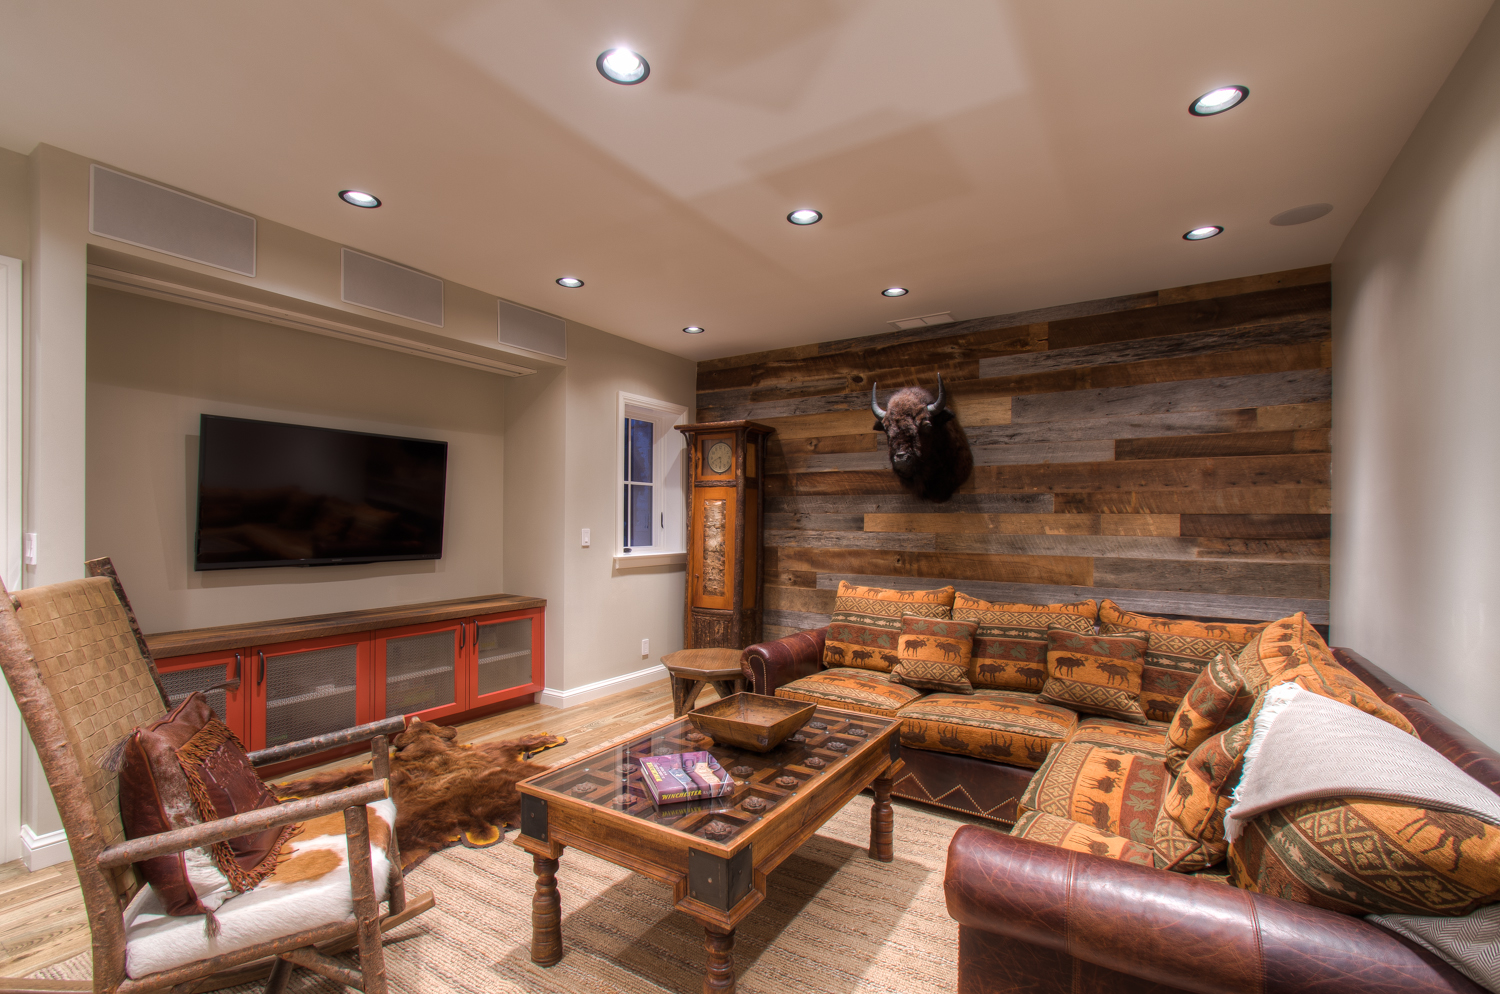 Den with Flat Screen TV and Buffalo Head Wall Piece at Vacation Home in Telluride